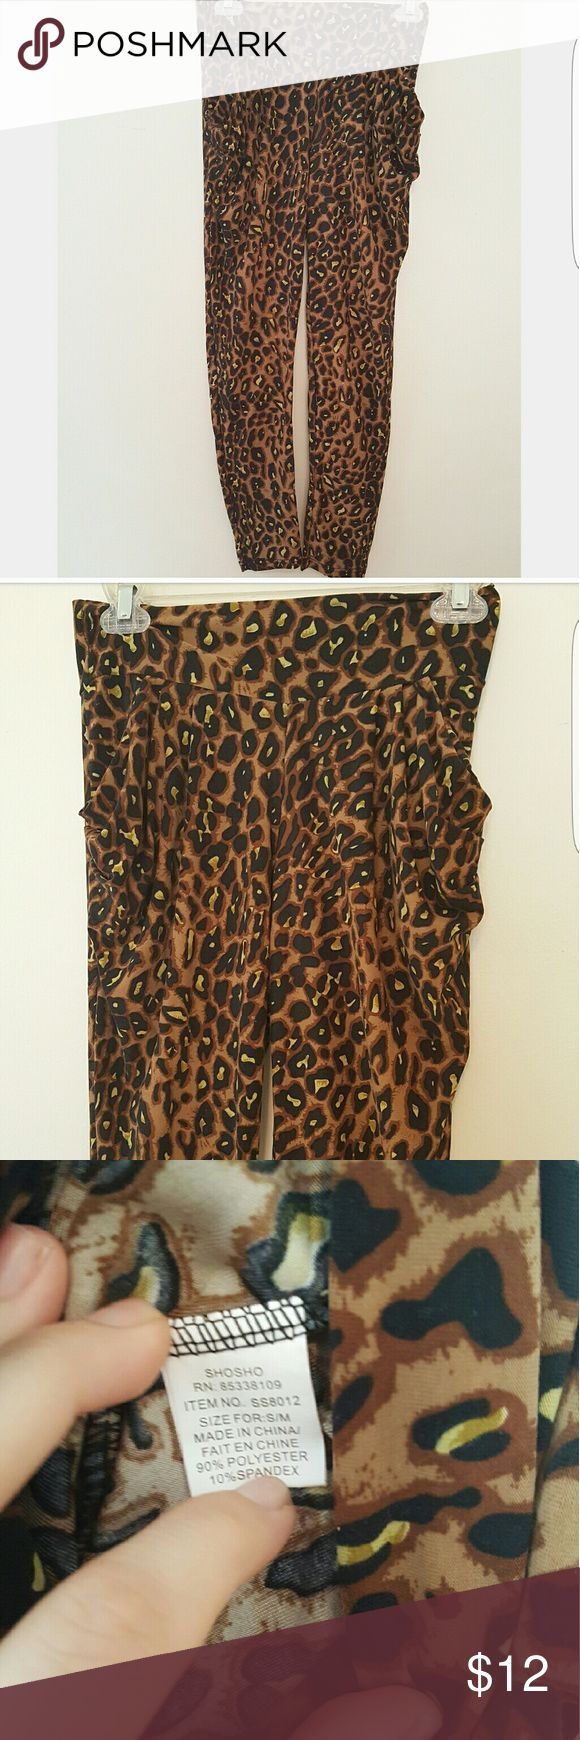 Fun Leopard Spandex Pants Great pair. Size for small/medium. 90%polyester 10% spandex. Cute, comfy and stylish! Pants